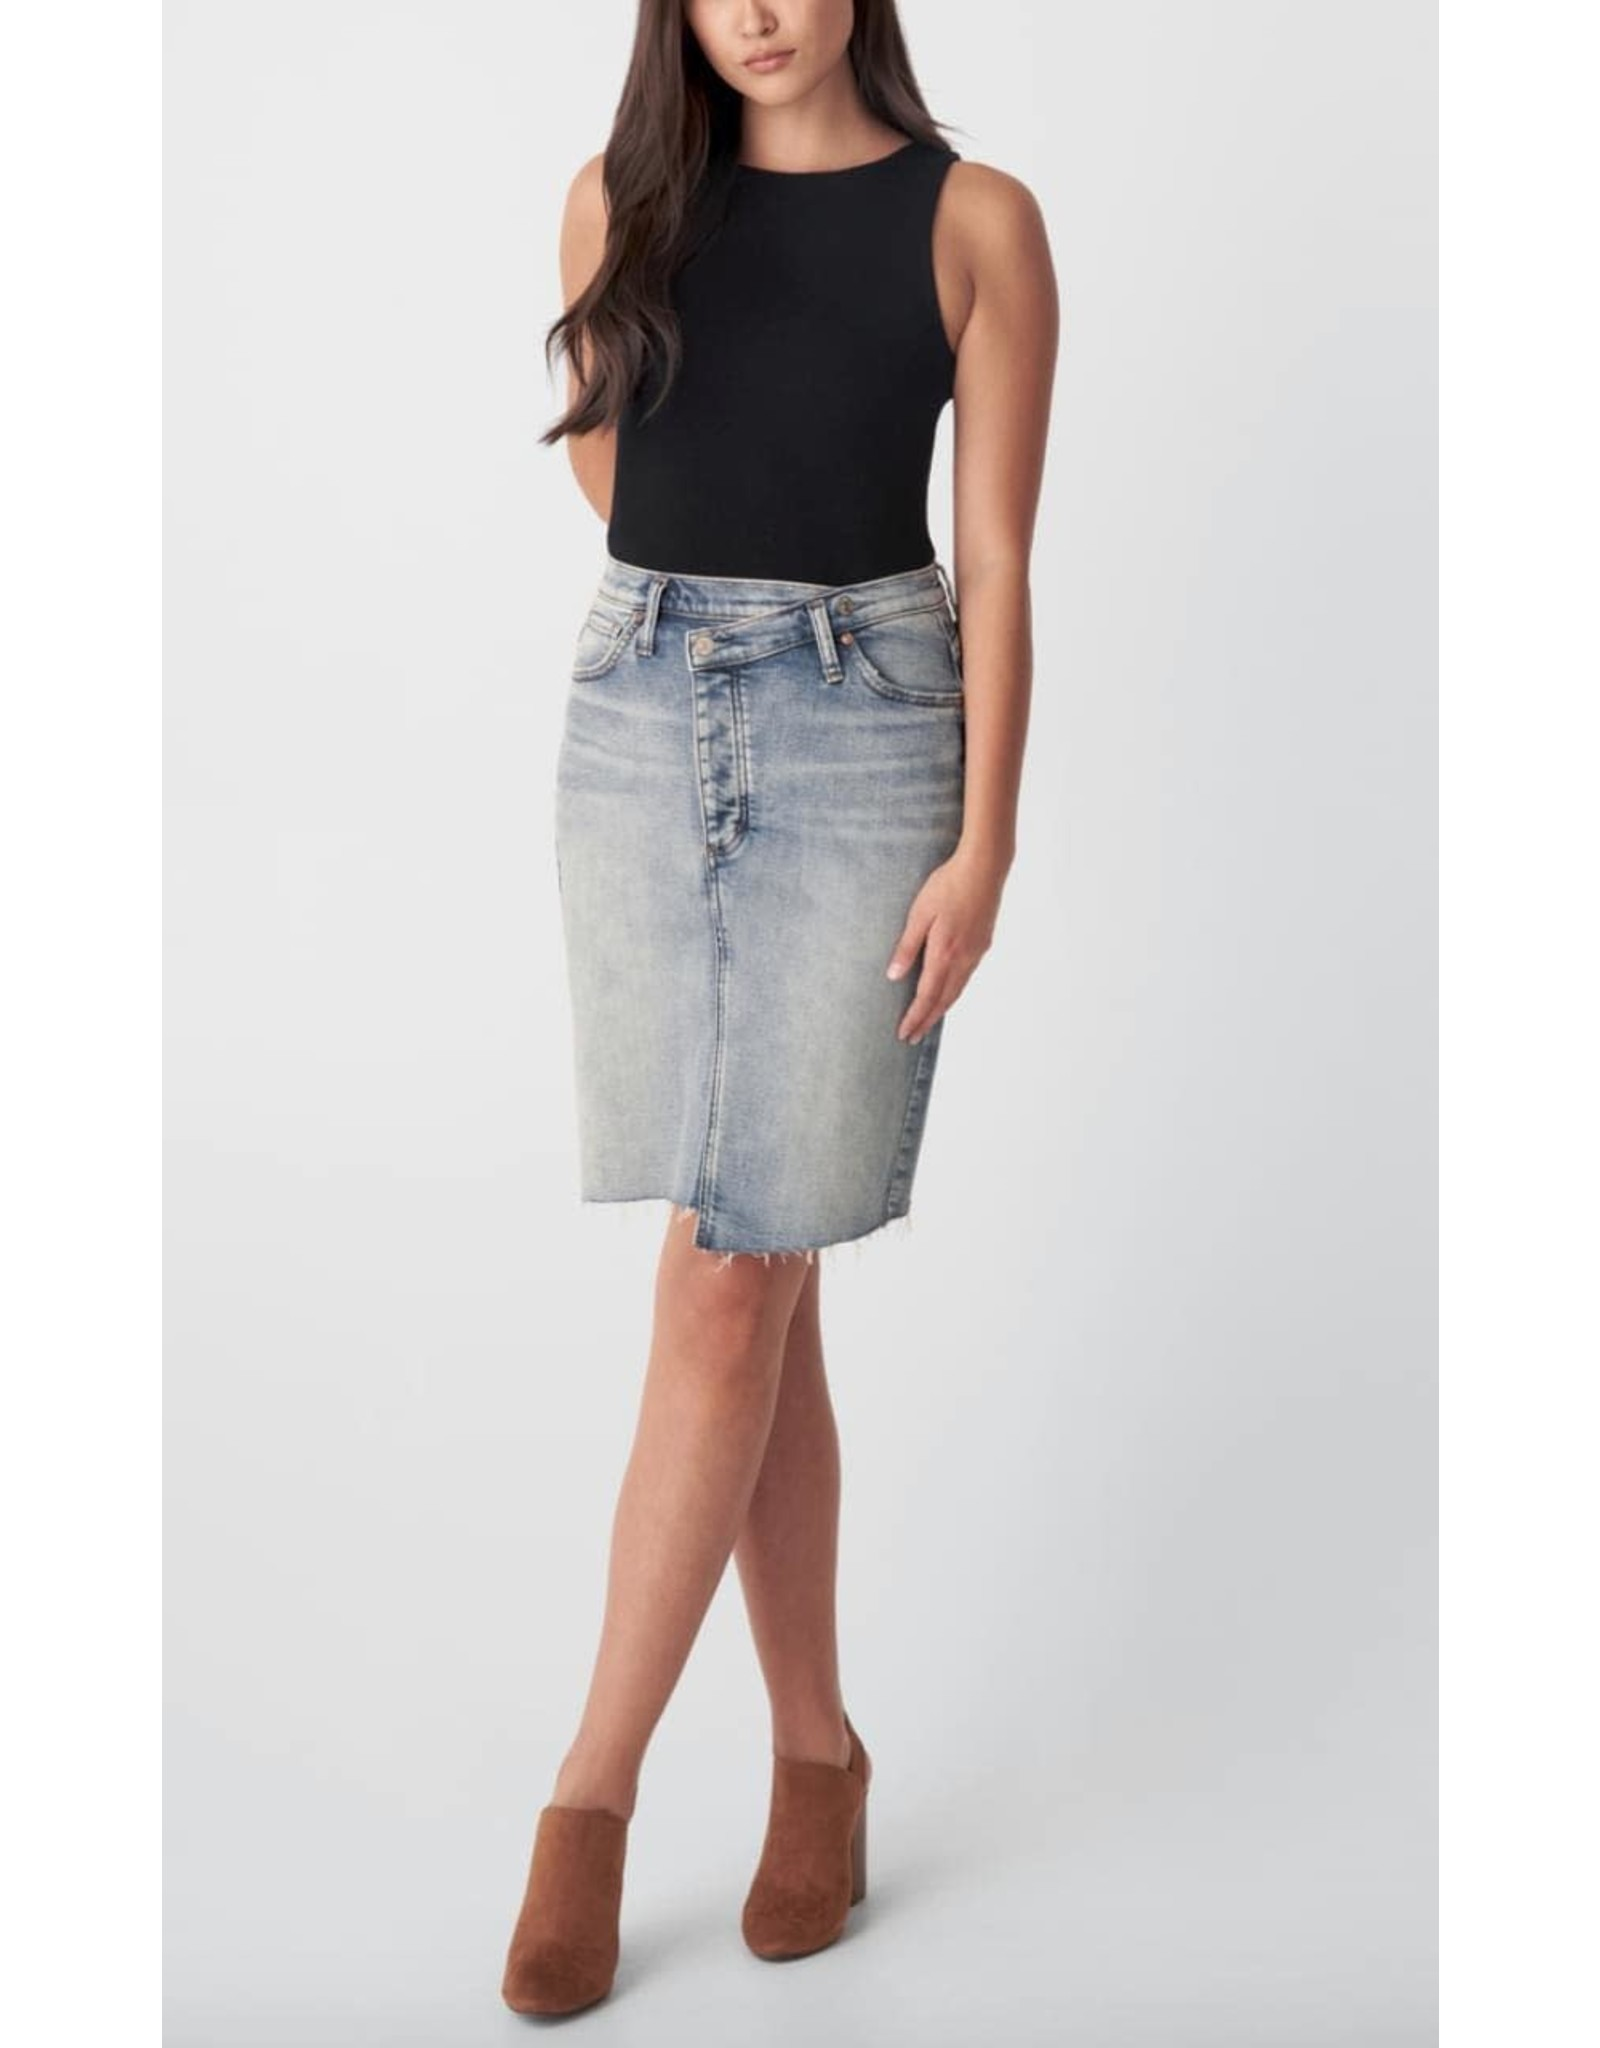 SILVER JEANS SILVER JEANS-JUPE-G268 HIGHLY